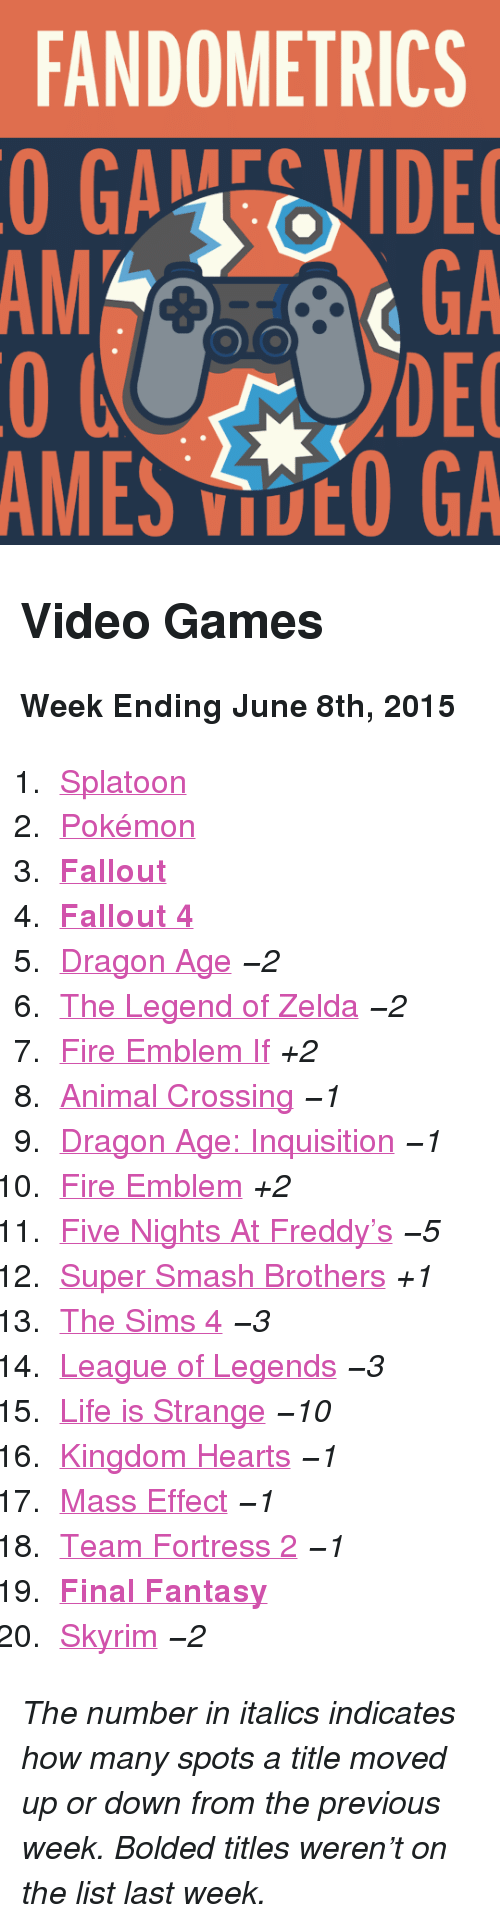 "Five Nights: FANDOMETRICS  GAEVIDE  GA  DEC  AMES VOO GA  AM <h2>Video Games</h2><p><b>Week Ending June 8th, 2015</b></p><ol><li><a href=""http://www.tumblr.com/search/splatoon"">Splatoon</a></li>  <li><a href=""http://www.tumblr.com/search/pokemon"">Pokémon</a></li>  <li><a href=""http://www.tumblr.com/search/fallout""><b>Fallout</b></a></li>  <li><a href=""http://www.tumblr.com/search/fallout%204""><b>Fallout 4</b></a></li>  <li><a href=""http://www.tumblr.com/search/dragon%20age"">Dragon Age</a> <i>−2</i></li>  <li><a href=""http://www.tumblr.com/search/legend%20of%20zelda"">The Legend of Zelda</a> <i>−2</i></li>  <li><a href=""http://www.tumblr.com/search/fire%20emblem%20if"">Fire Emblem If</a> <i>+2</i></li>  <li><a href=""http://www.tumblr.com/search/acnl"">Animal Crossing</a> <i>−1</i></li>  <li><a href=""http://www.tumblr.com/search/dragon%20age%20inquisition"">Dragon Age: Inquisition</a> <i>−1</i></li>  <li><a href=""http://www.tumblr.com/search/fire%20emblem"">Fire Emblem</a> <i>+2</i></li>  <li><a href=""http://www.tumblr.com/search/five%20nights%20at%20freddy's"">Five Nights At Freddy&rsquo;s</a> <i>−5</i></li>  <li><a href=""http://www.tumblr.com/search/super%20smash%20bros"">Super Smash Brothers</a> <i>+1</i></li>  <li><a href=""http://www.tumblr.com/search/sims%204"">The Sims 4</a> <i>−3</i></li>  <li><a href=""http://www.tumblr.com/search/league%20of%20legends"">League of Legends</a> <i>−3</i></li>  <li><a href=""http://www.tumblr.com/search/life%20is%20strange"">Life is Strange</a> <i>−10</i></li>  <li><a href=""http://www.tumblr.com/search/kingdom%20hearts"">Kingdom Hearts</a> <i>−1</i></li>  <li><a href=""http://www.tumblr.com/search/mass%20effect"">Mass Effect</a> <i>−1</i></li>  <li><a href=""http://www.tumblr.com/search/tf2"">Team Fortress 2</a> <i>−1</i></li>  <li><a href=""http://www.tumblr.com/search/final%20fantasy""><b>Final Fantasy</b></a></li>  <li><a href=""http://www.tumblr.com/search/skyrim"">Skyrim</a> <i>−2</i></li></ol><p><i>The number in italics indicates how many spots a title moved up or down from the previous week. Bolded titles weren't on the list last week.</i></p>"